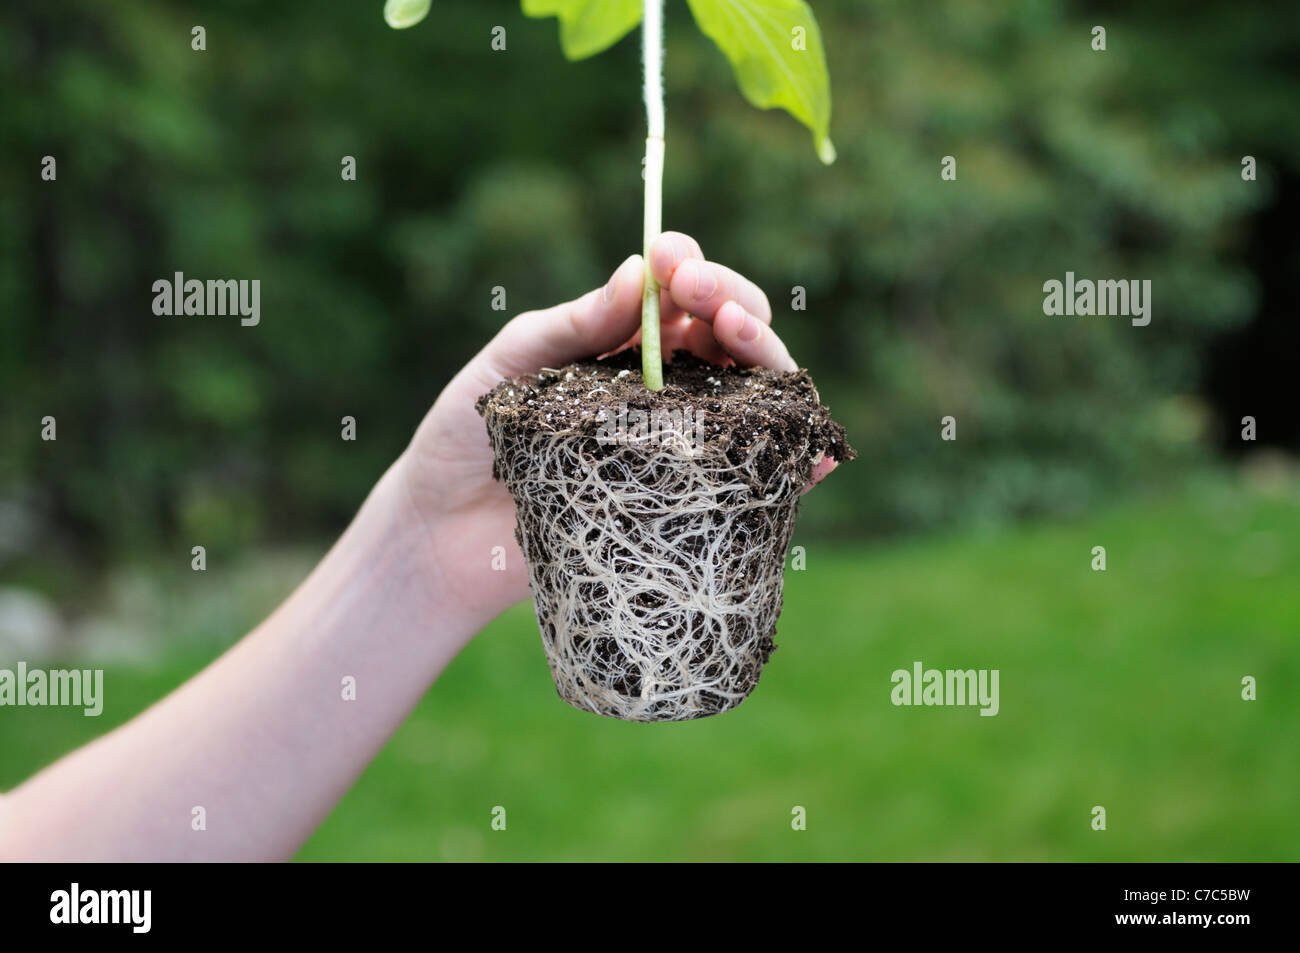 Boy holding a root ball from sunflower plant, Helianthus annuus - Stock Image